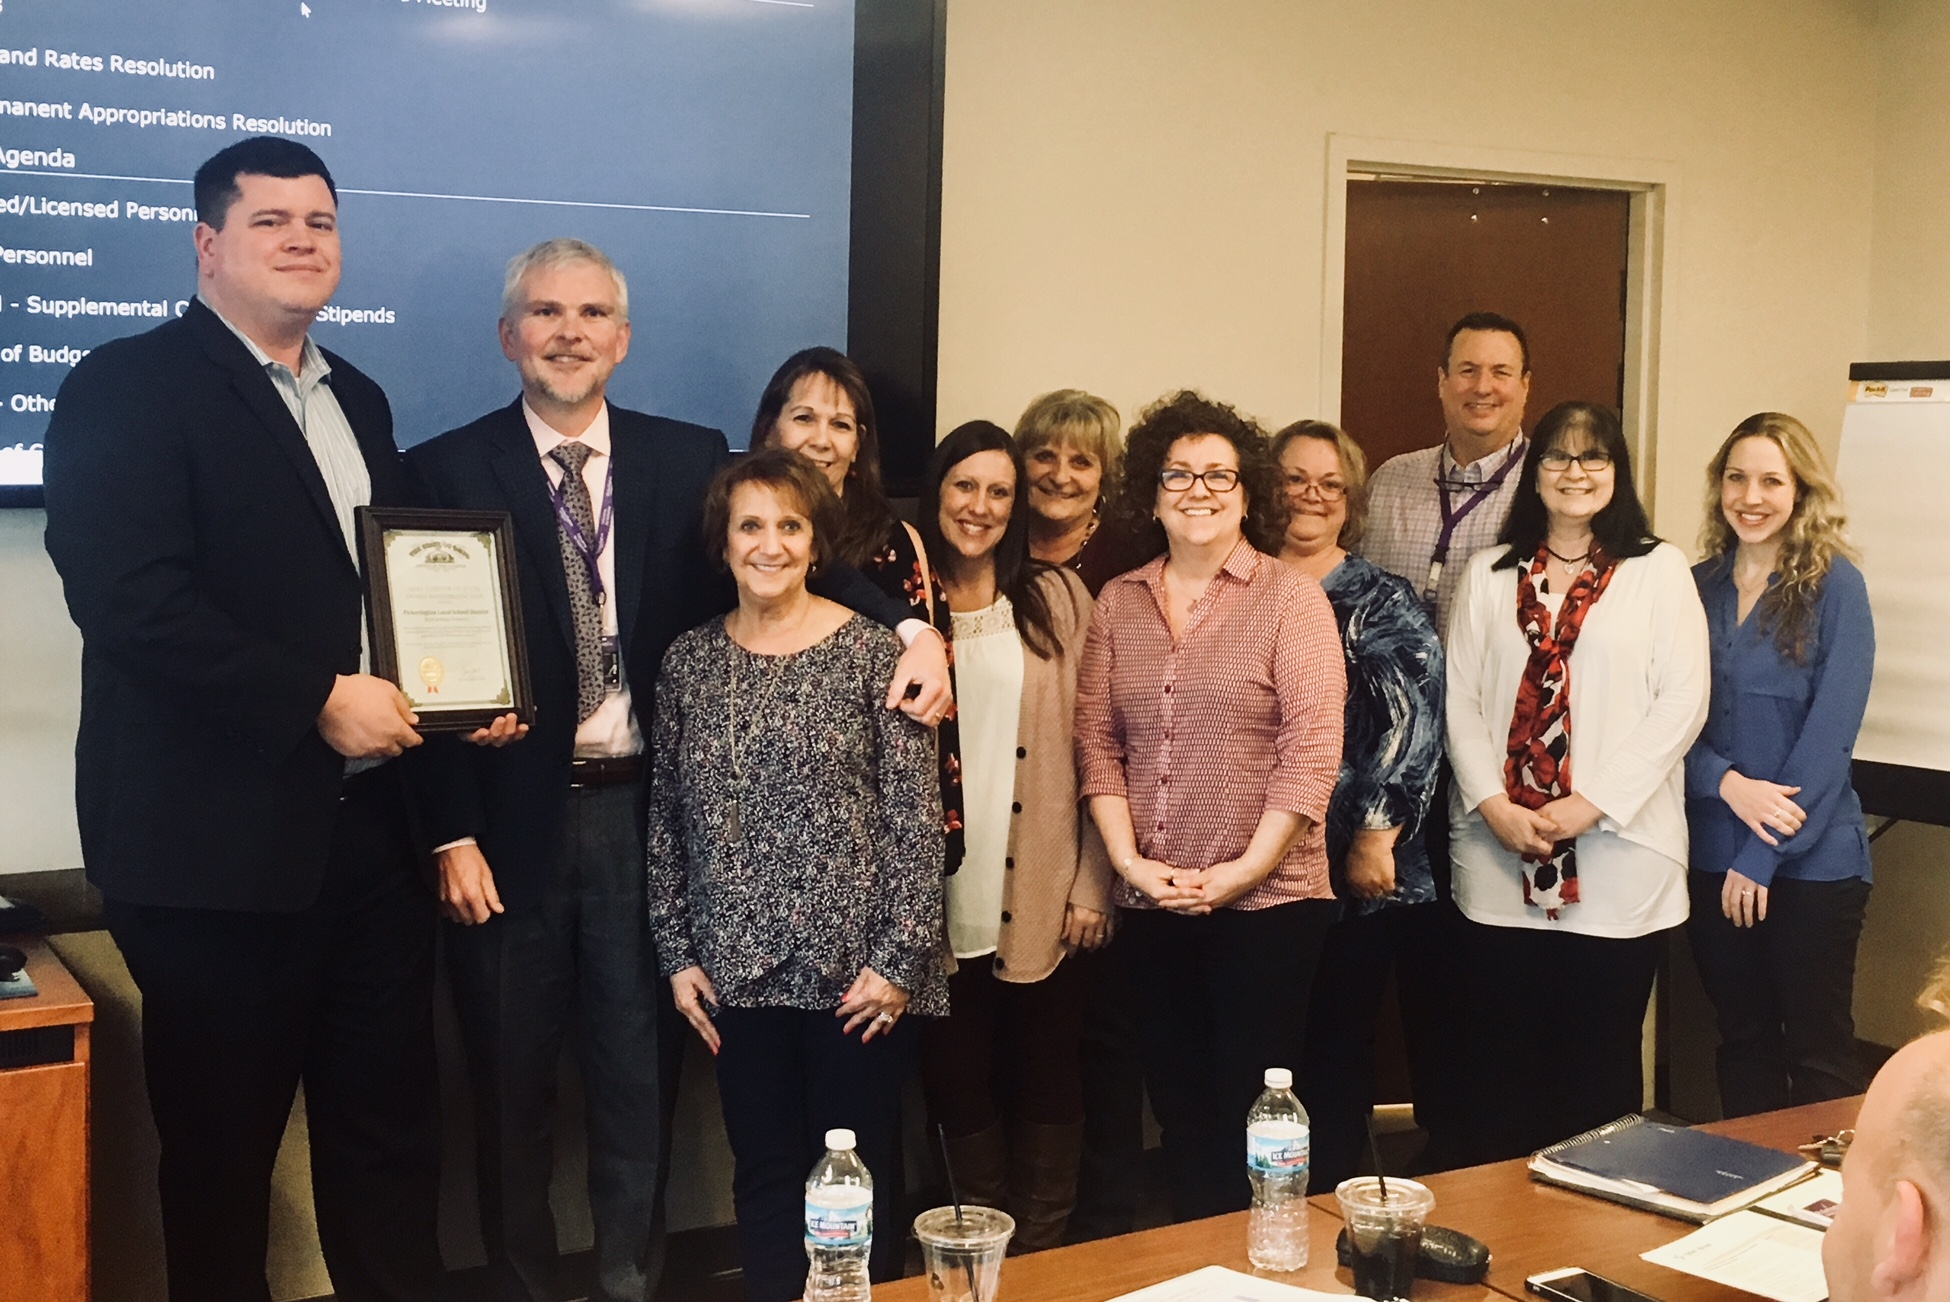 Pickerington Schools receives Award of Distinction by State Auditor